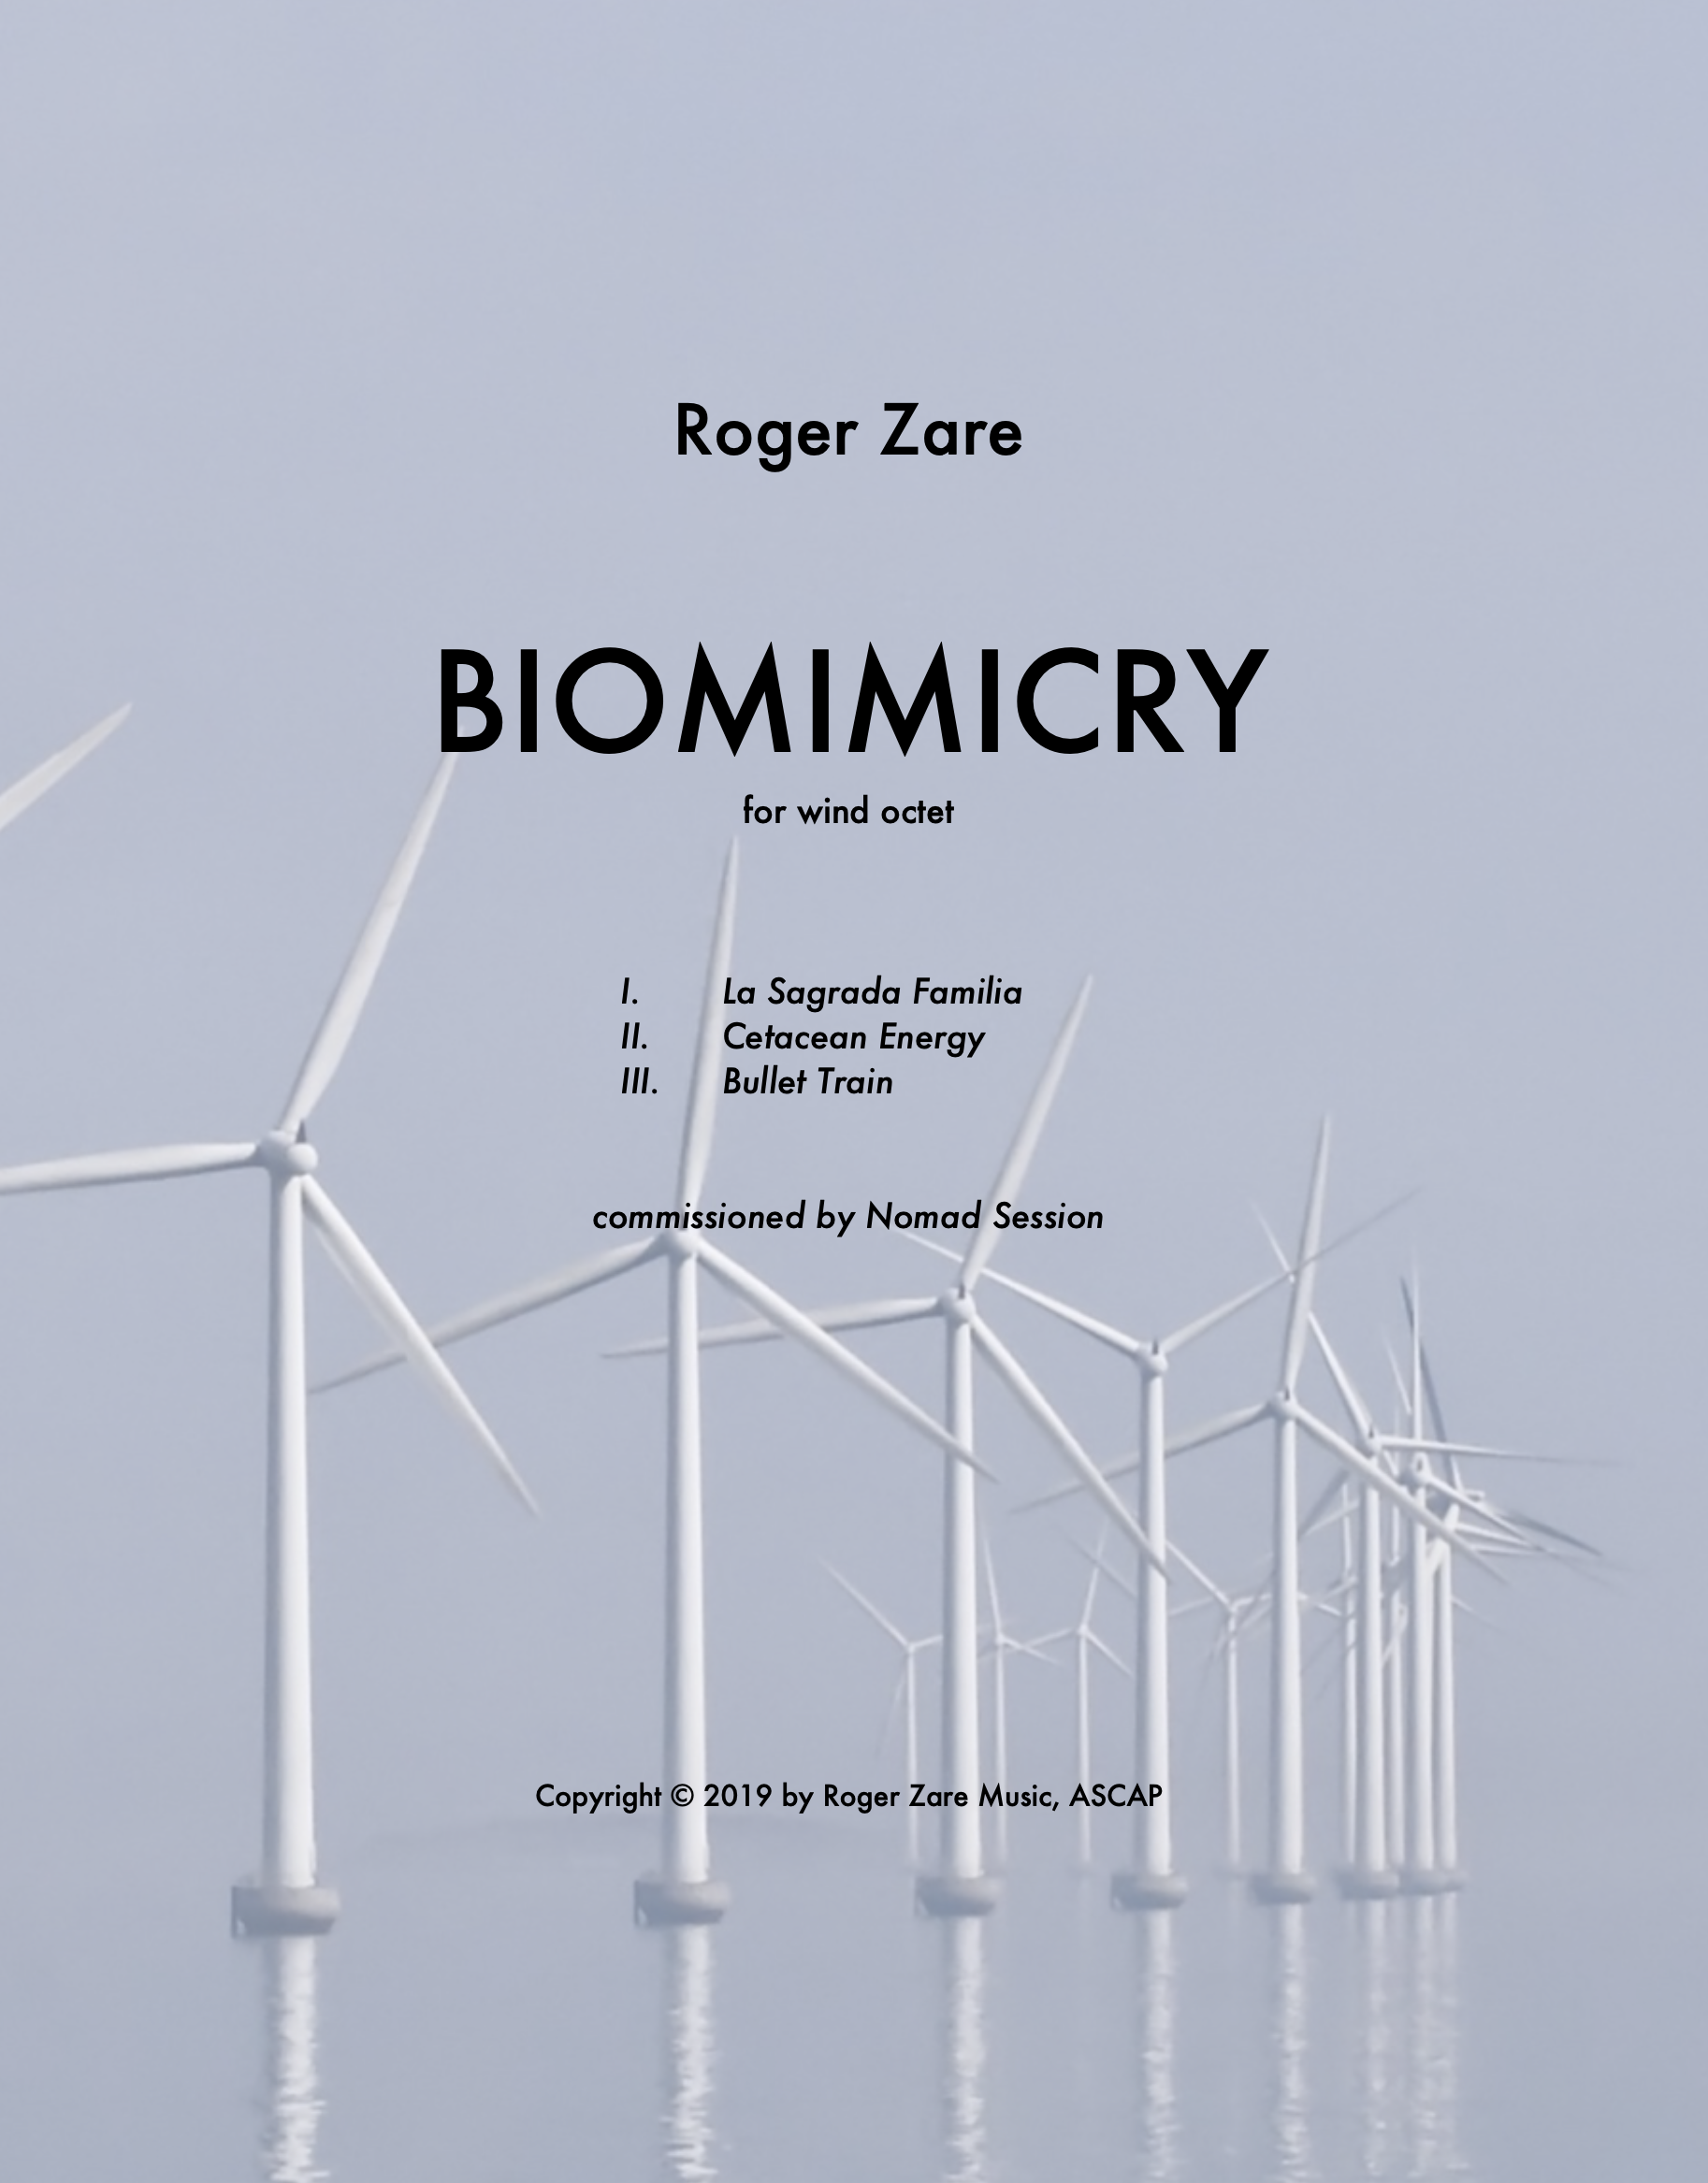 Biomimicry by Roger Zare